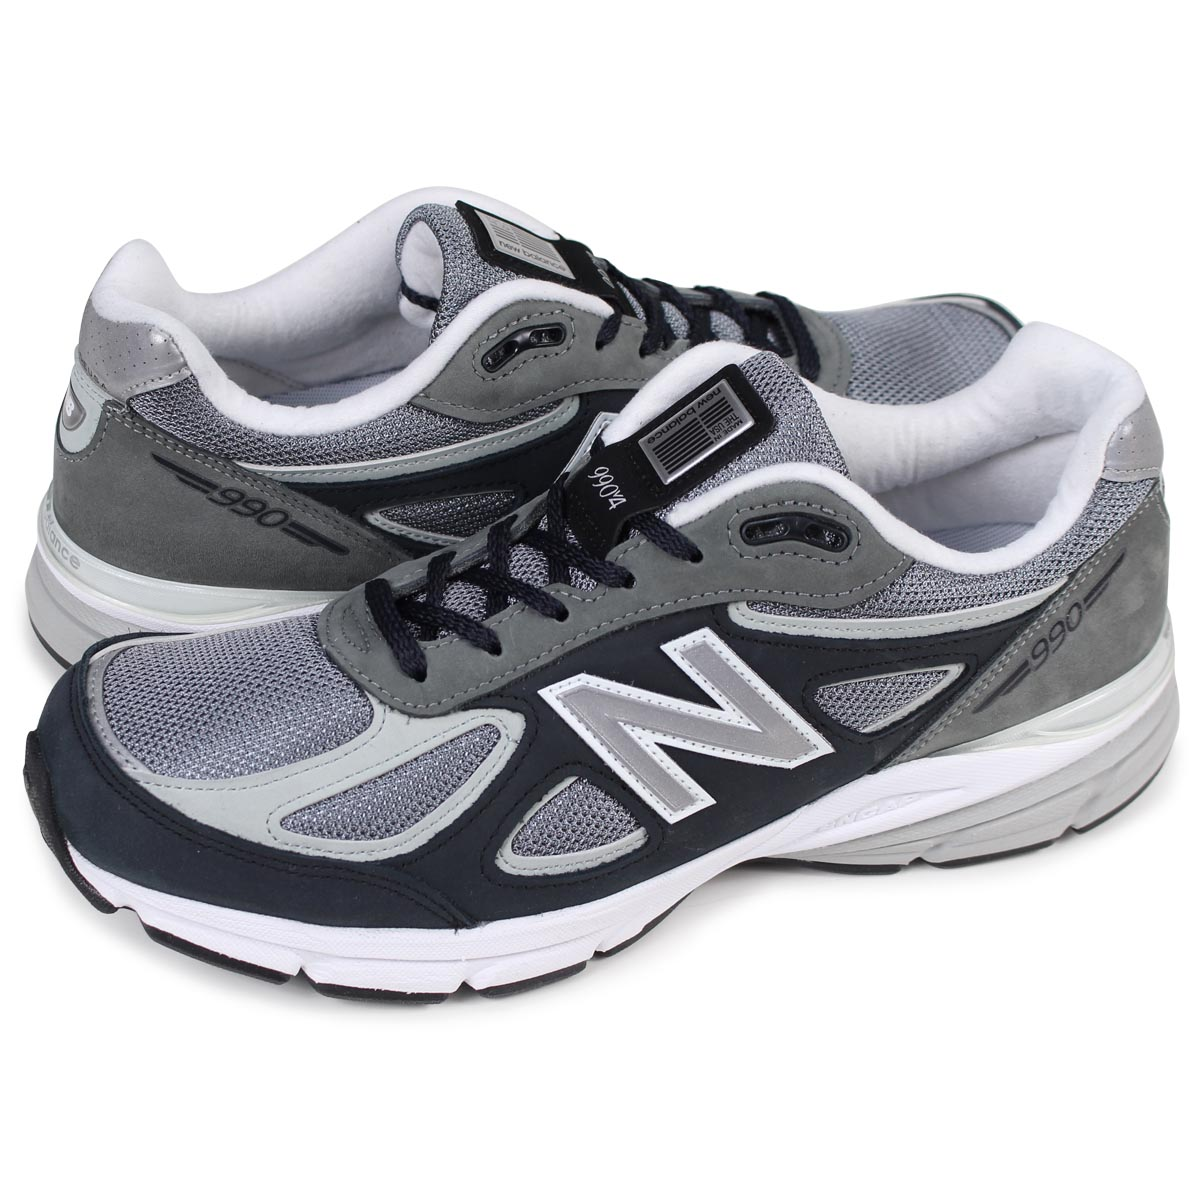 reputable site 3c866 9568c new balance M990XG4 MADE IN USA New Balance 990 men's sneakers D Wise gray  [193]